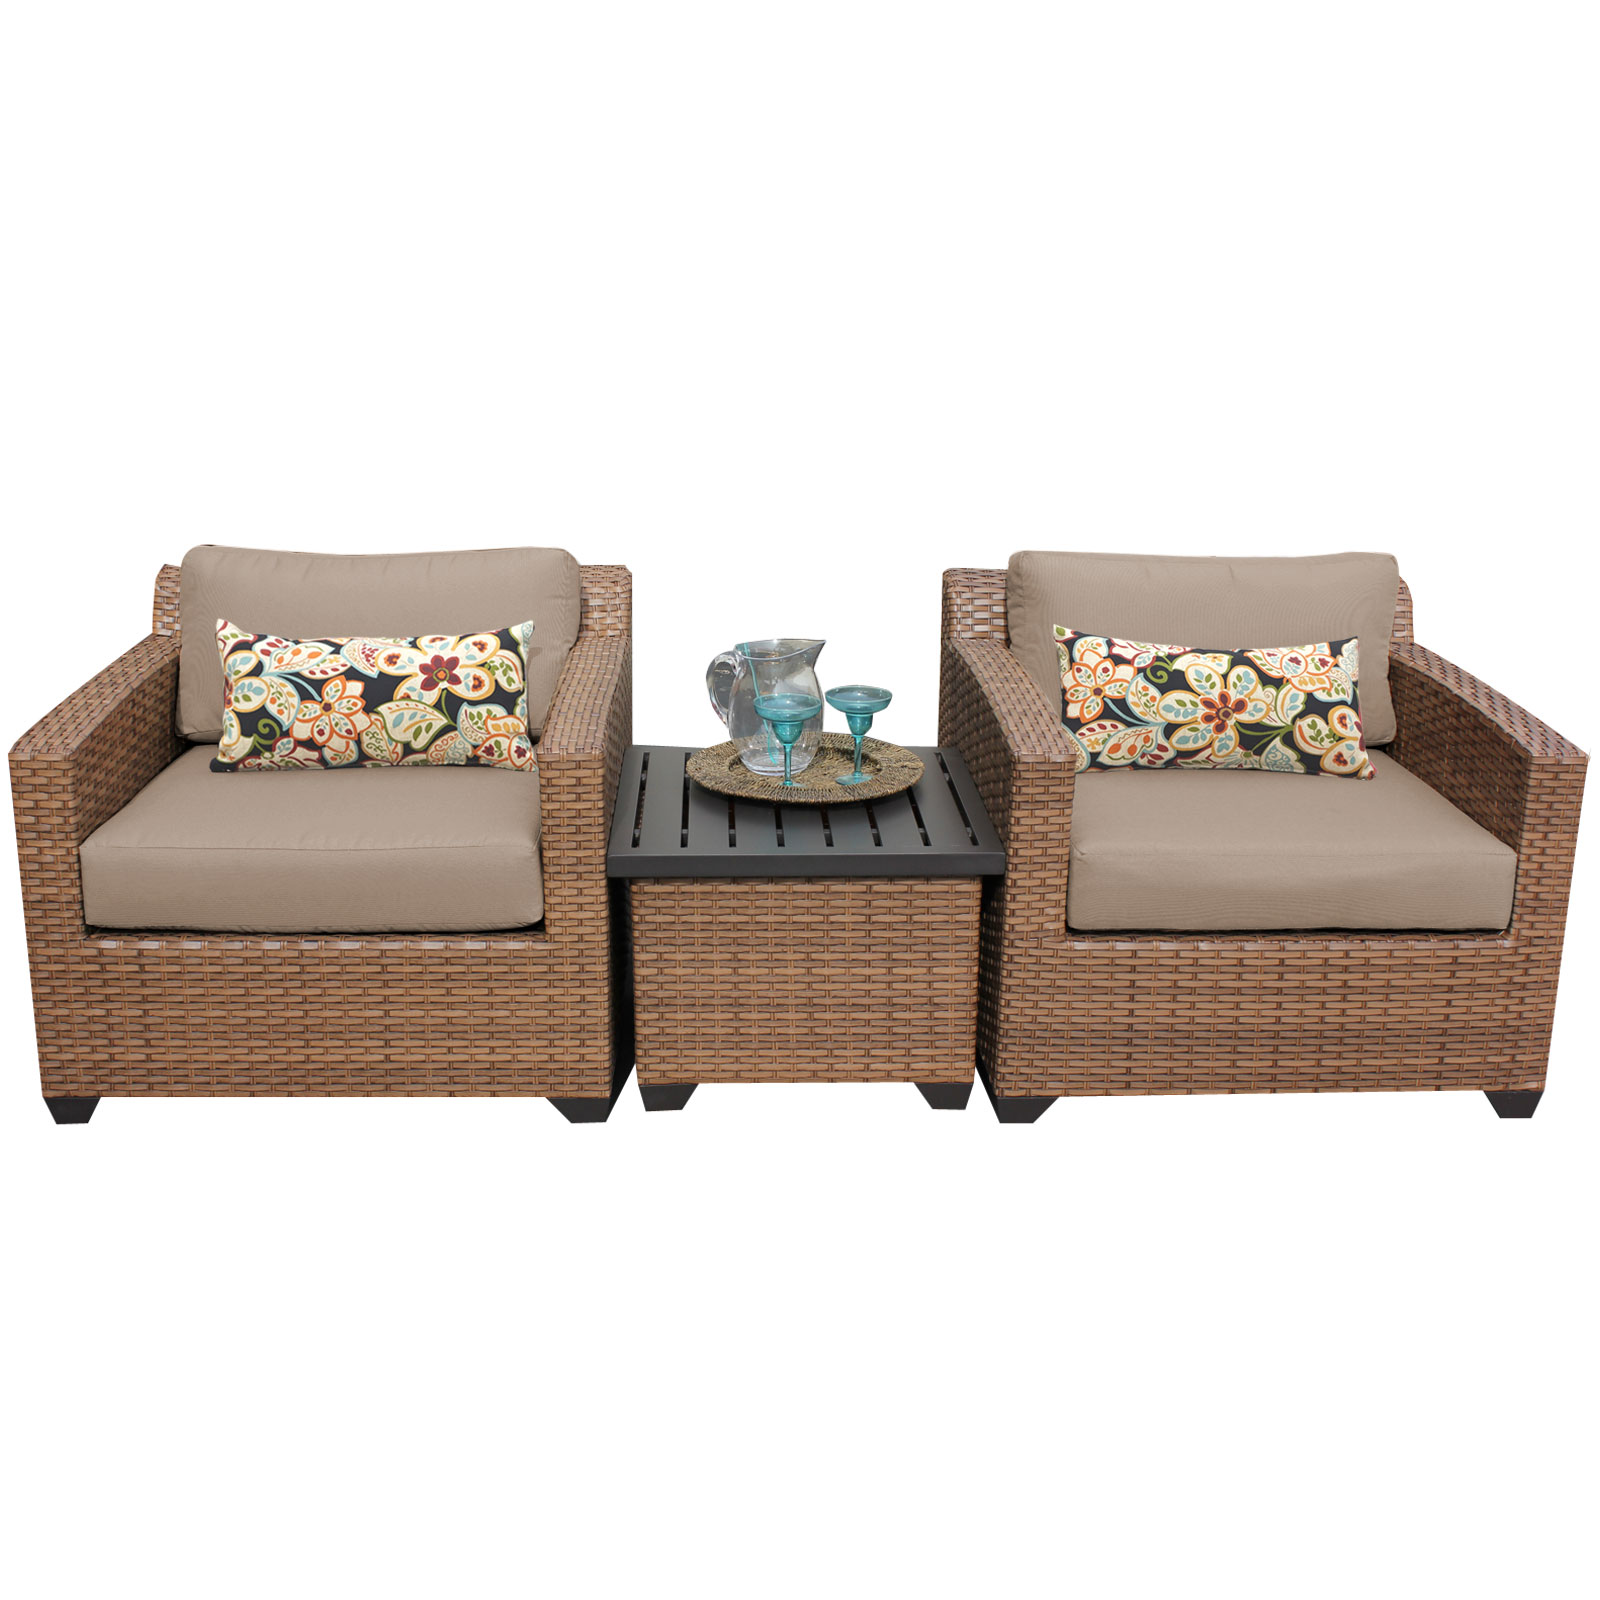 TK Classics Tuscan 3 Piece Outdoor Wicker Patio Furniture...